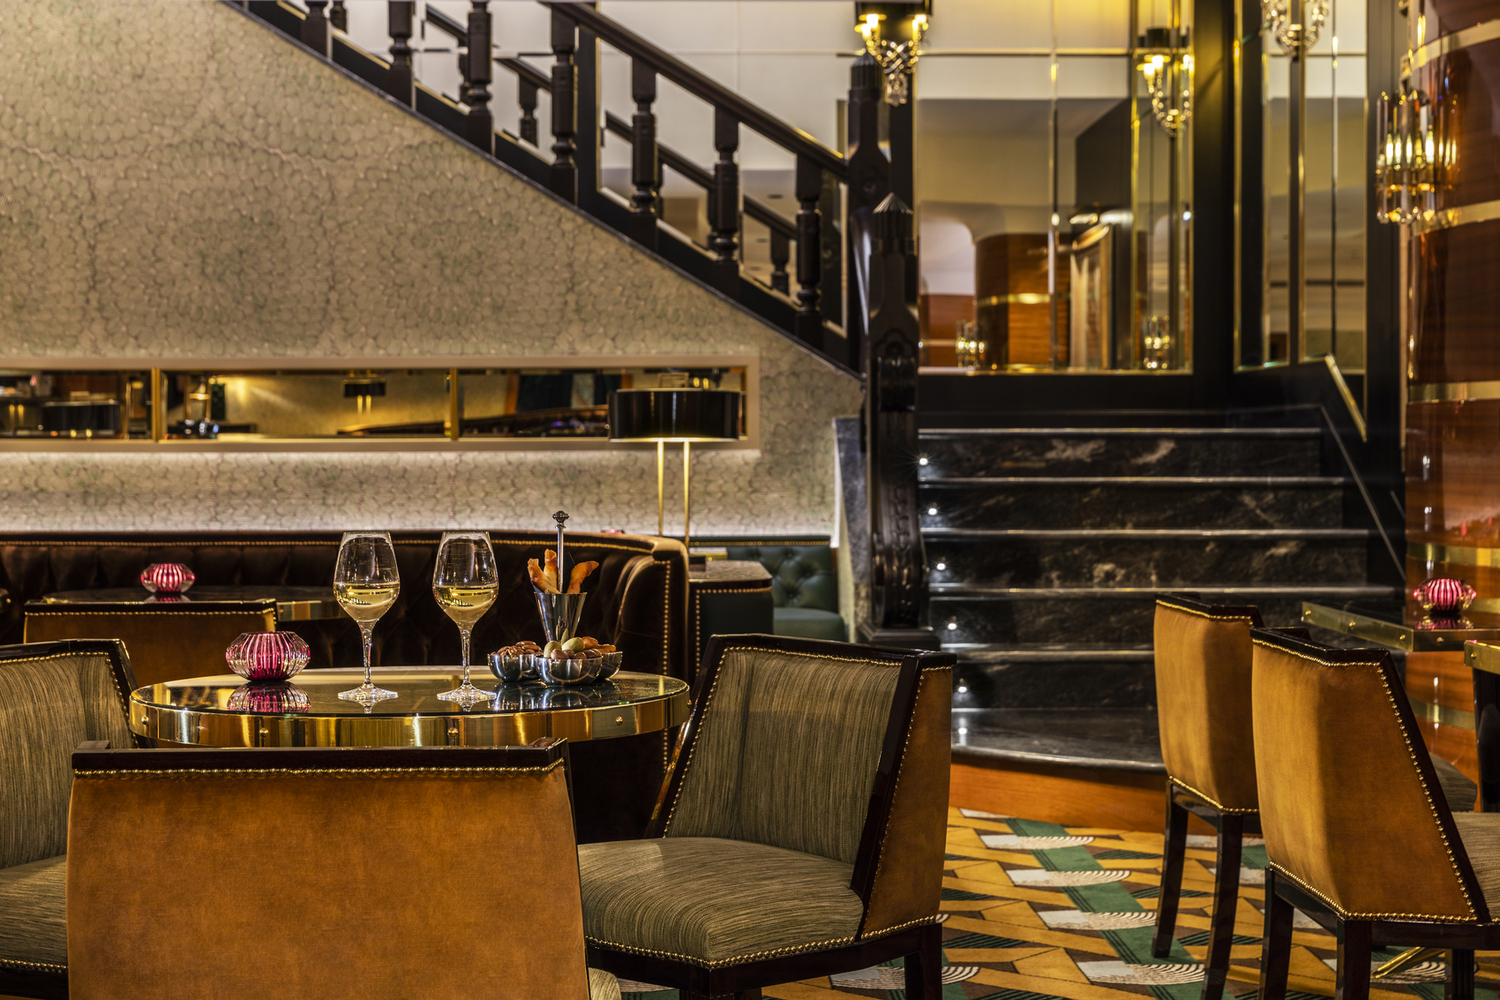 Luxury boutique hotel Porto Portugal Maison Albar Le Monumental Palace 5 stars cocktail bar Americain